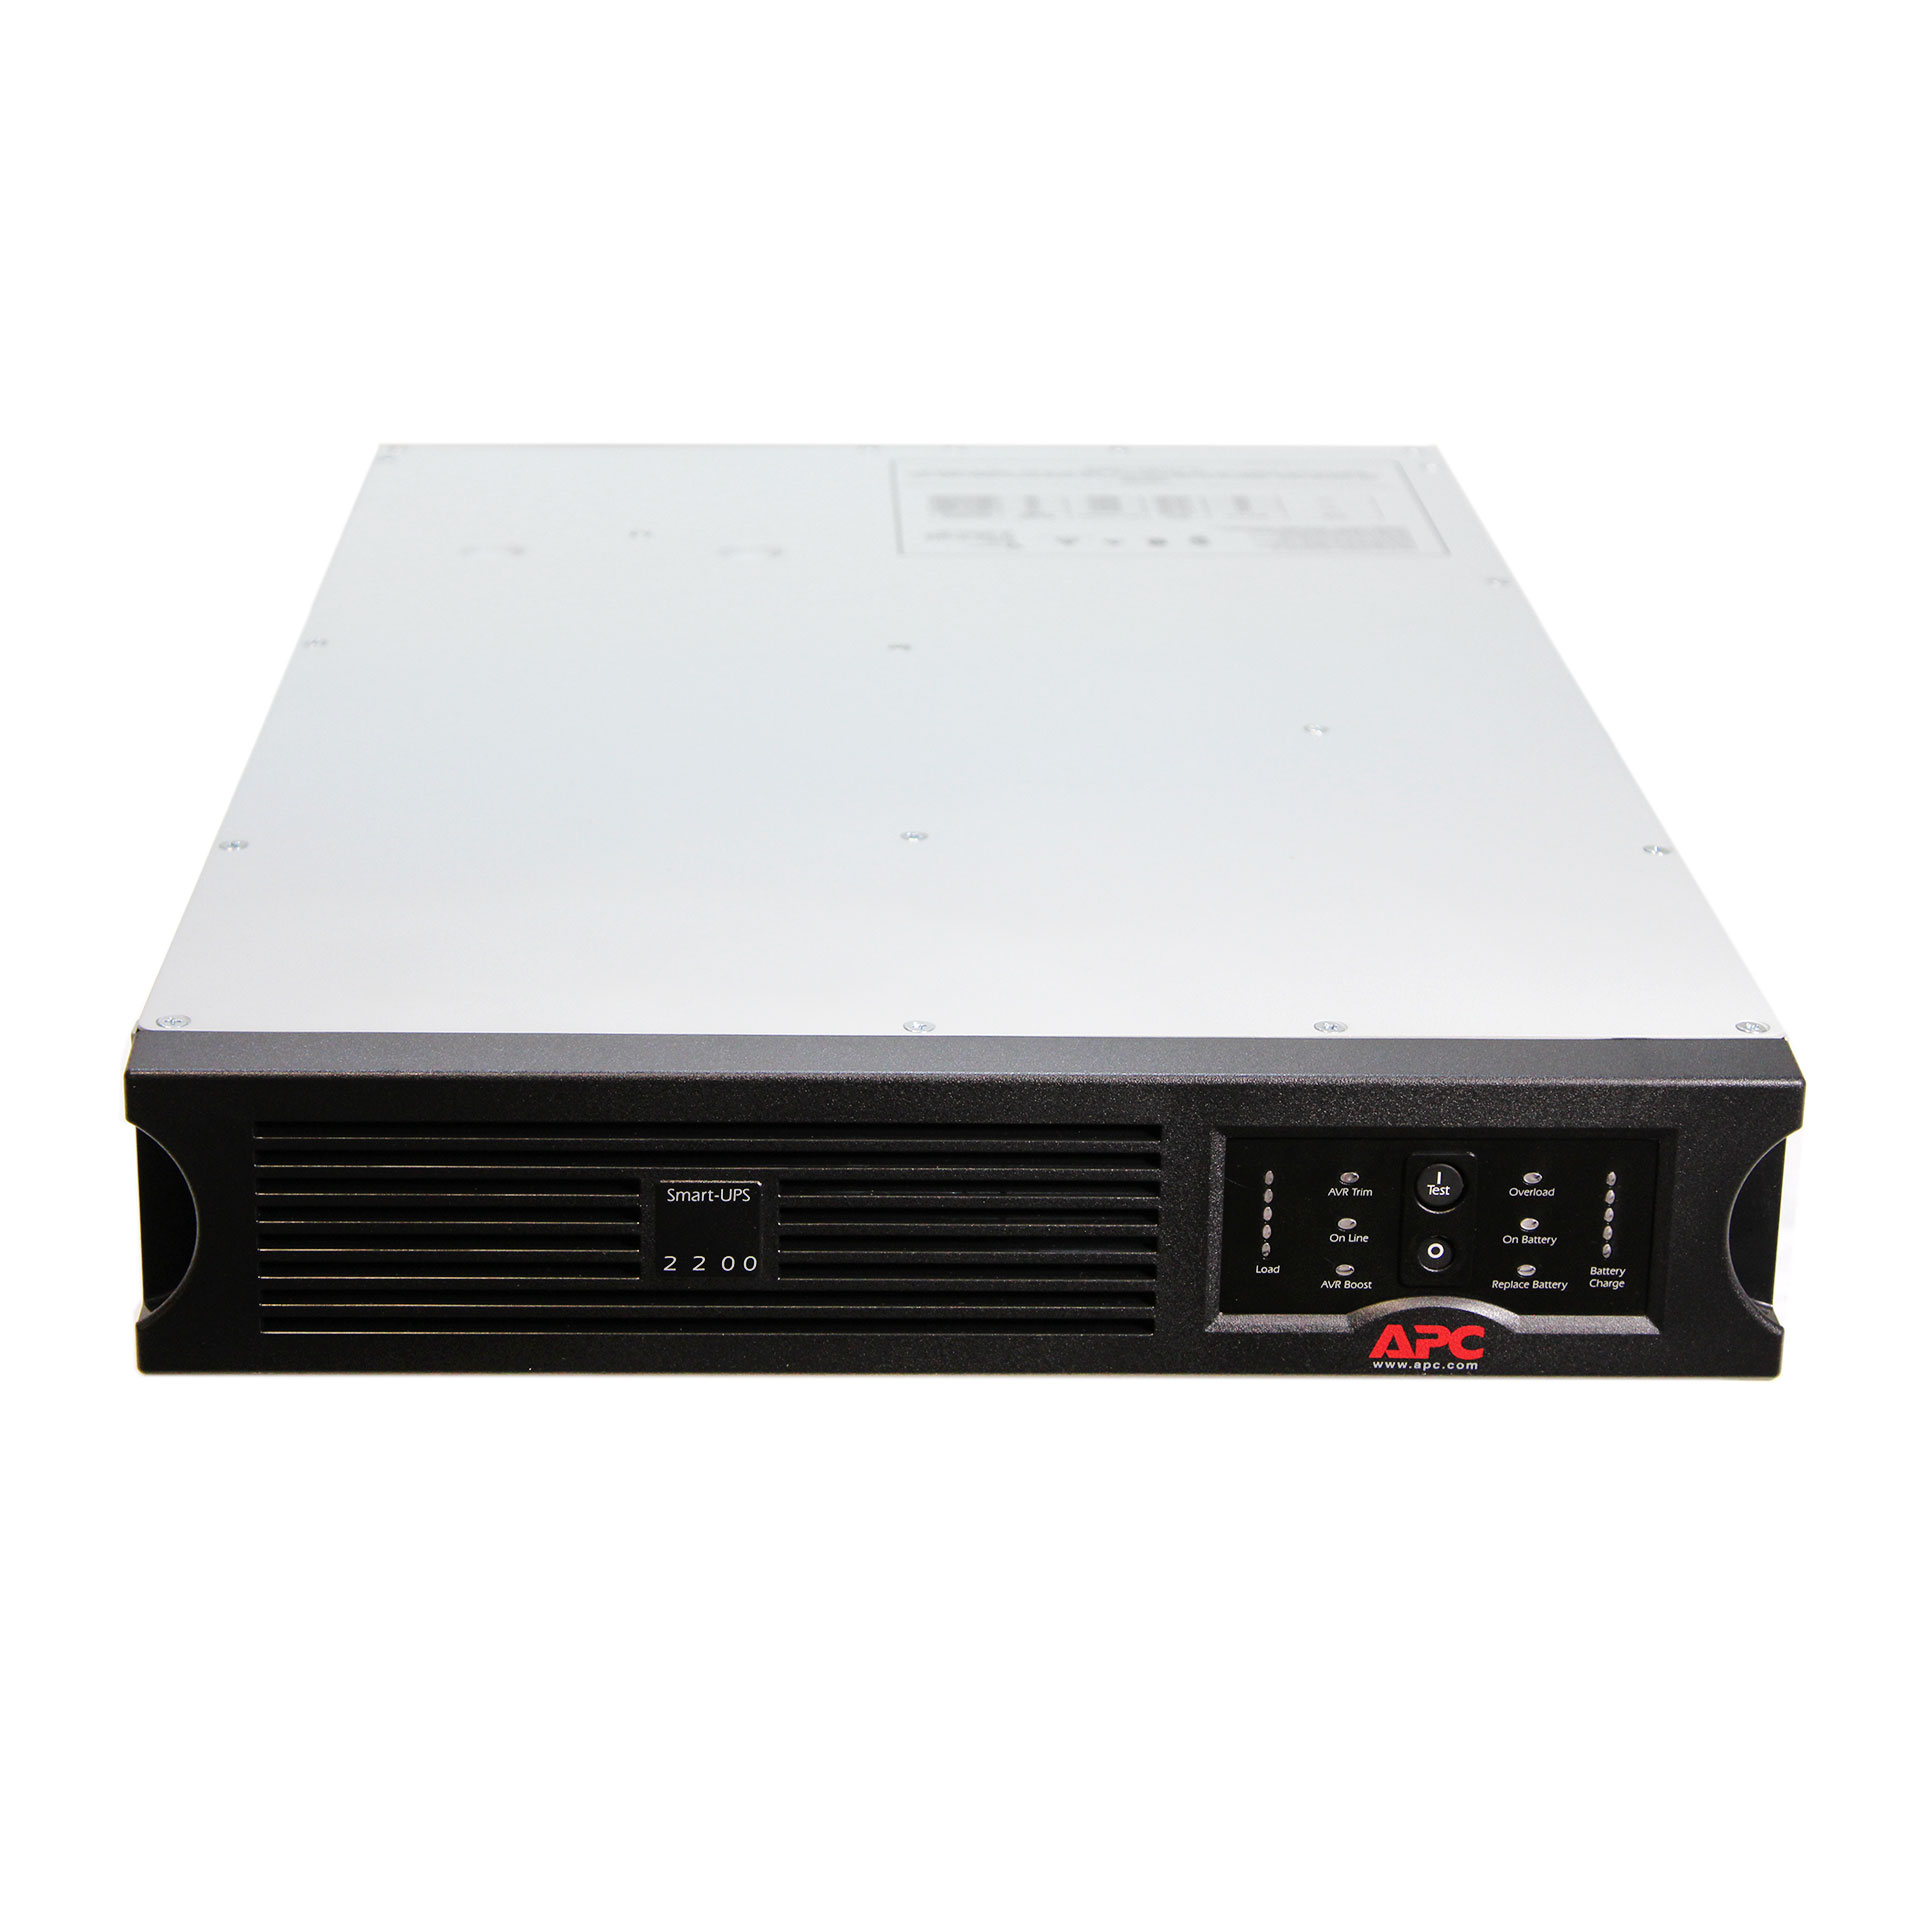 APC Smart-UPS SUA2200RM2U 2200VA USB & Serial 8 Outlets 120V UPS